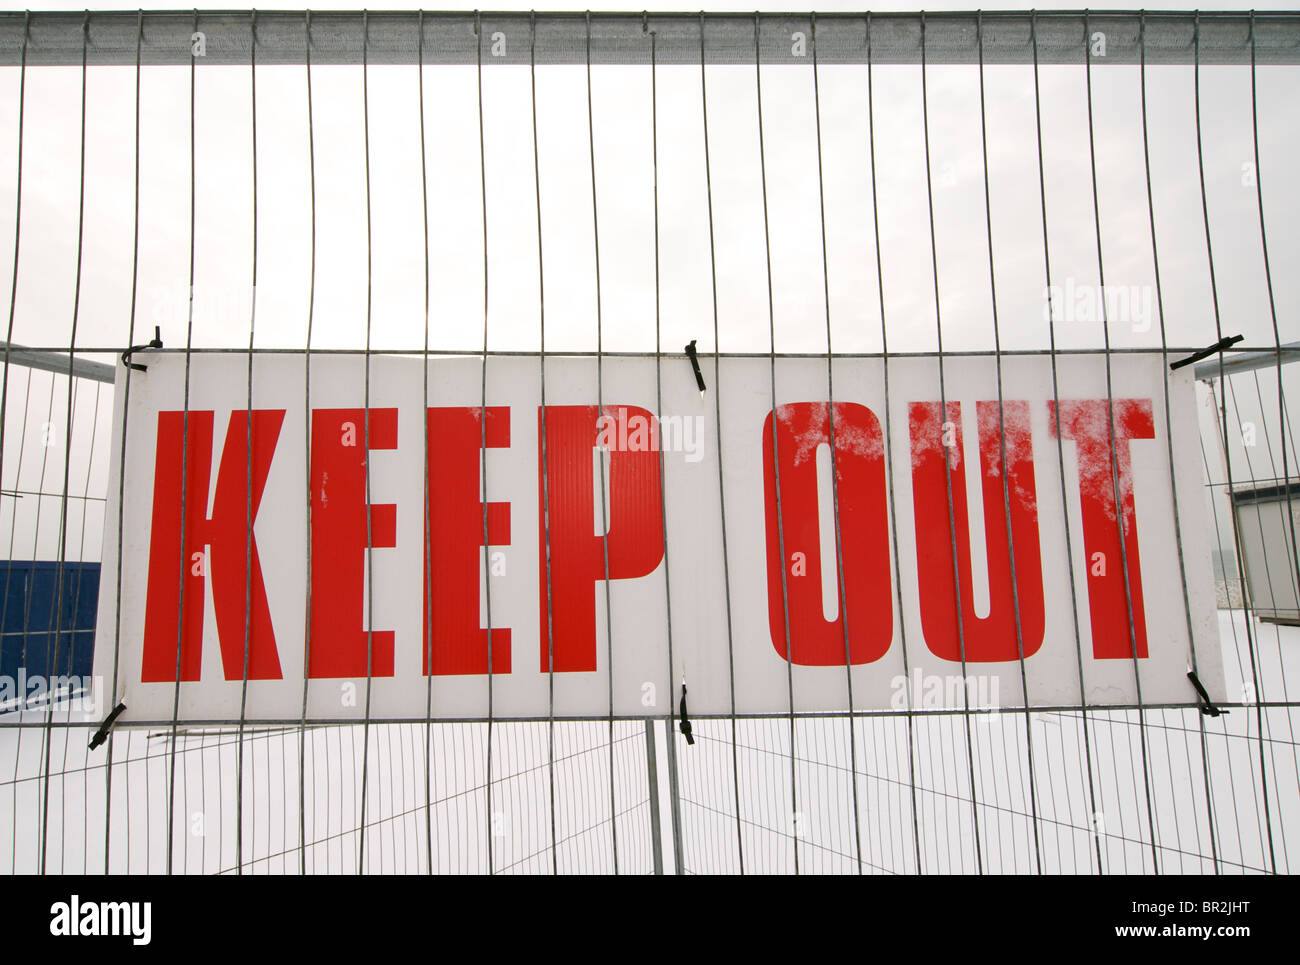 KEEP OUT sign on a wire mesh fence - Stock Image